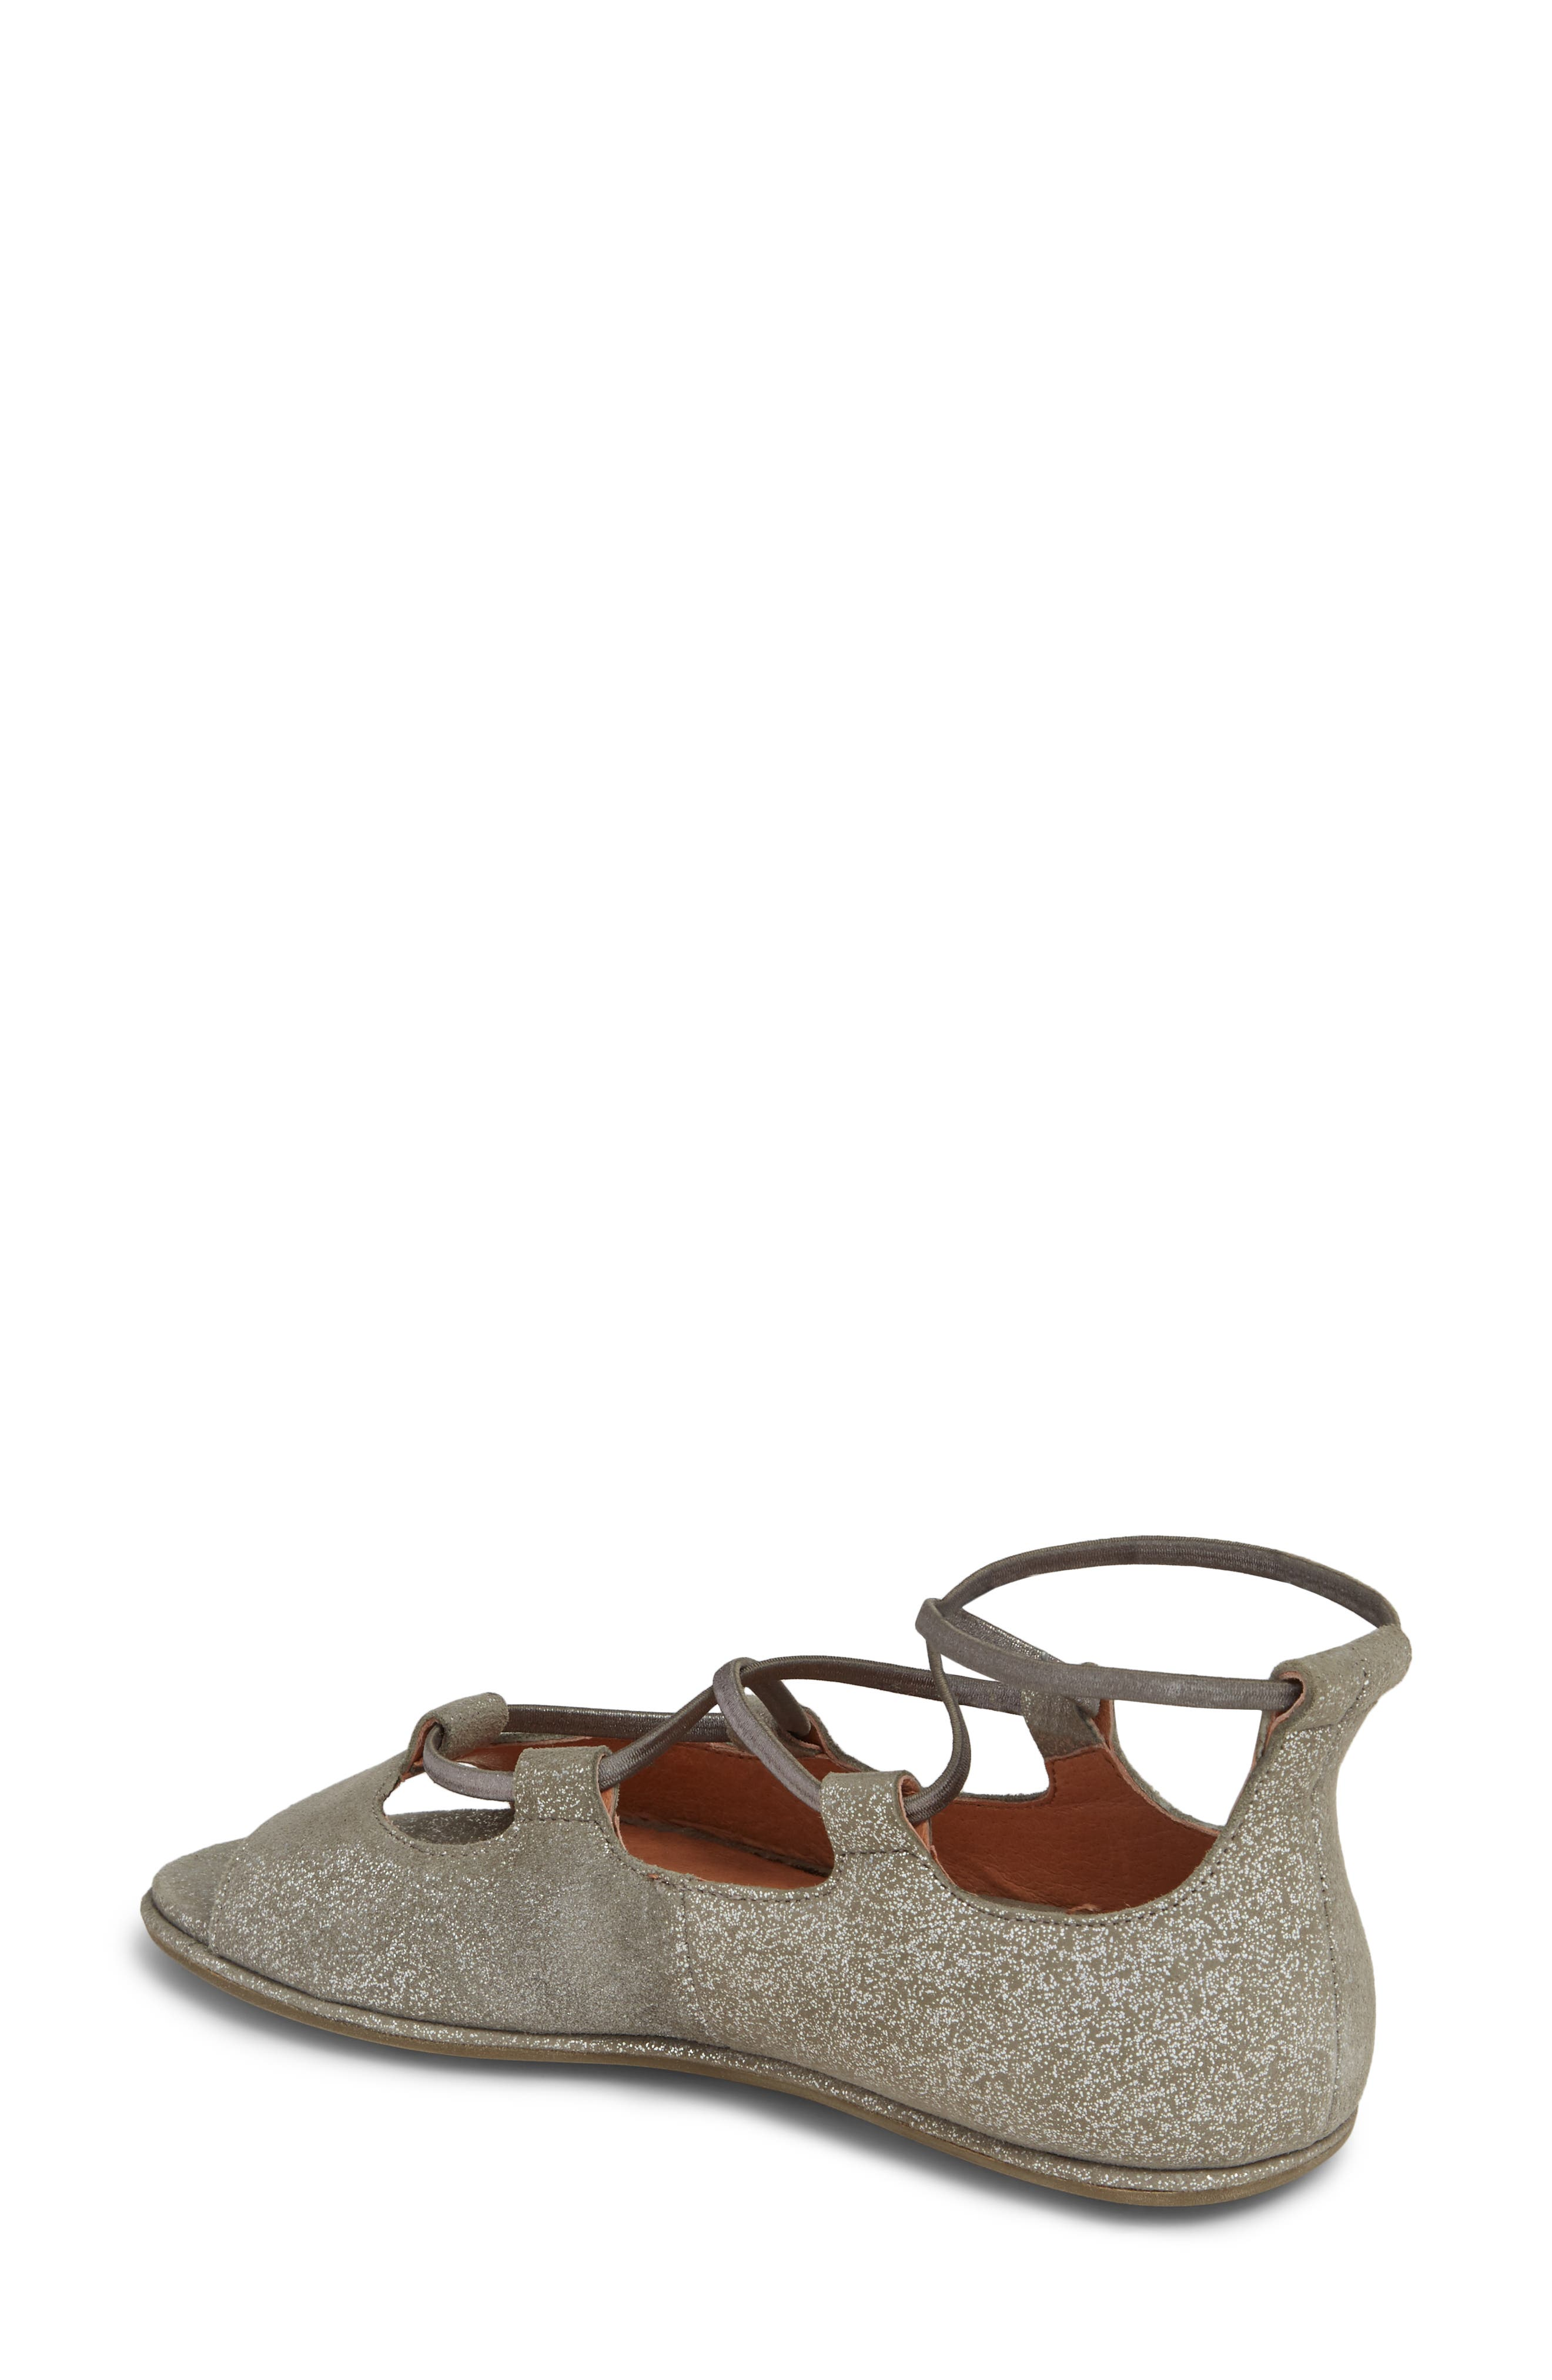 GENTLE SOULS BY KENNETH COLE, Lark Sandal, Alternate thumbnail 2, color, LIGHT PEWTER METALLIC LEATHER